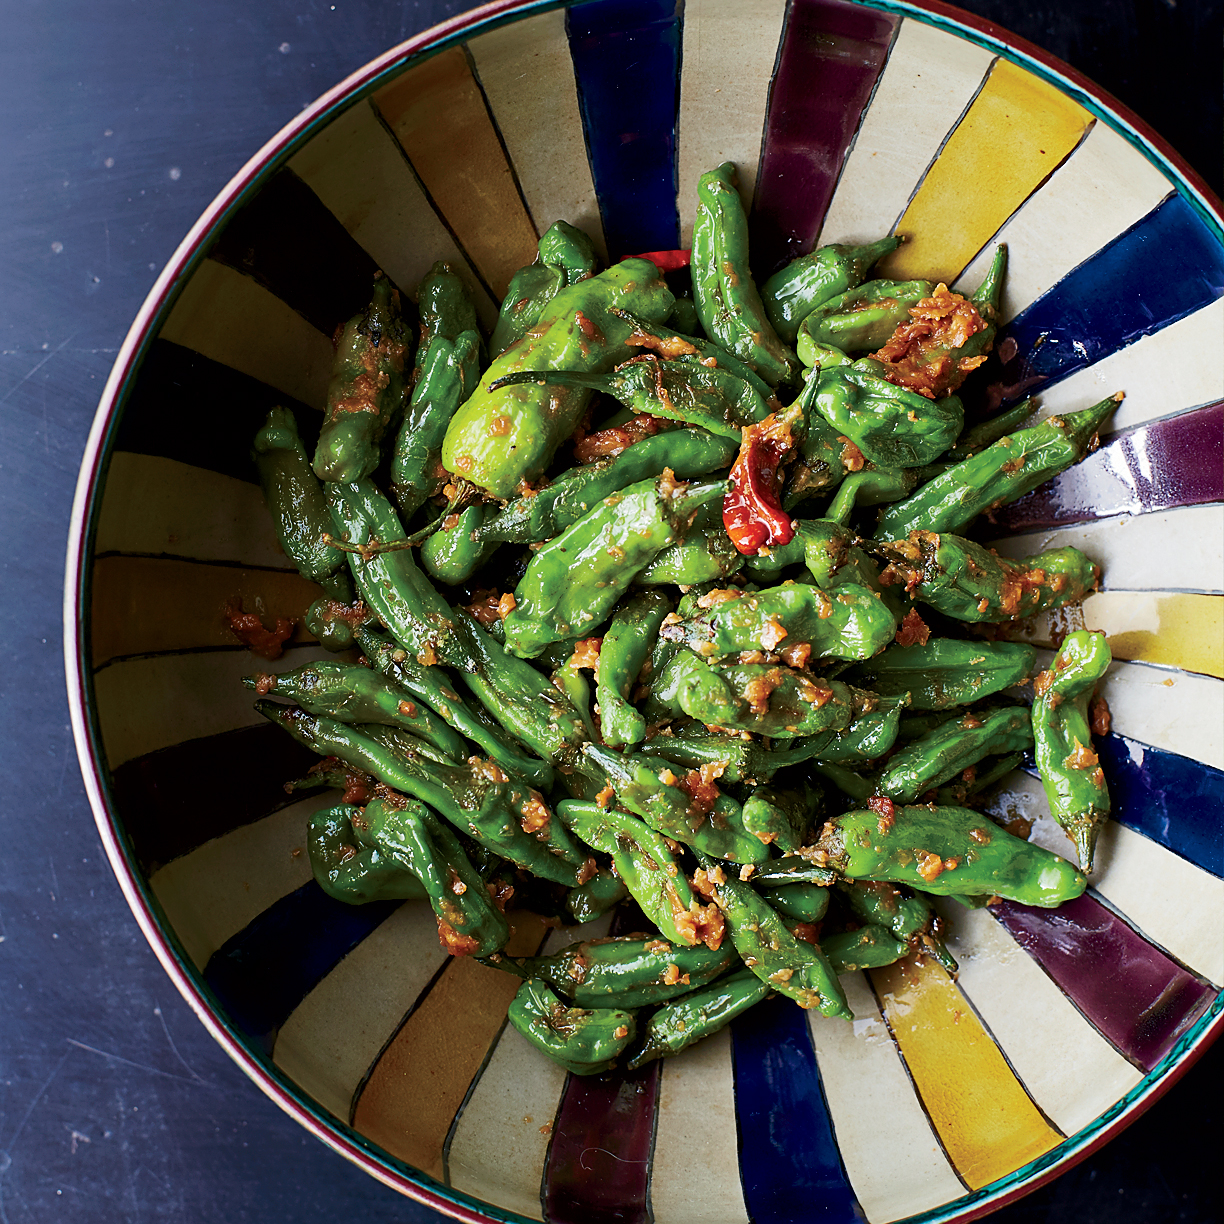 201409-r-blistered-shishito-peppers-with-miso.jpg